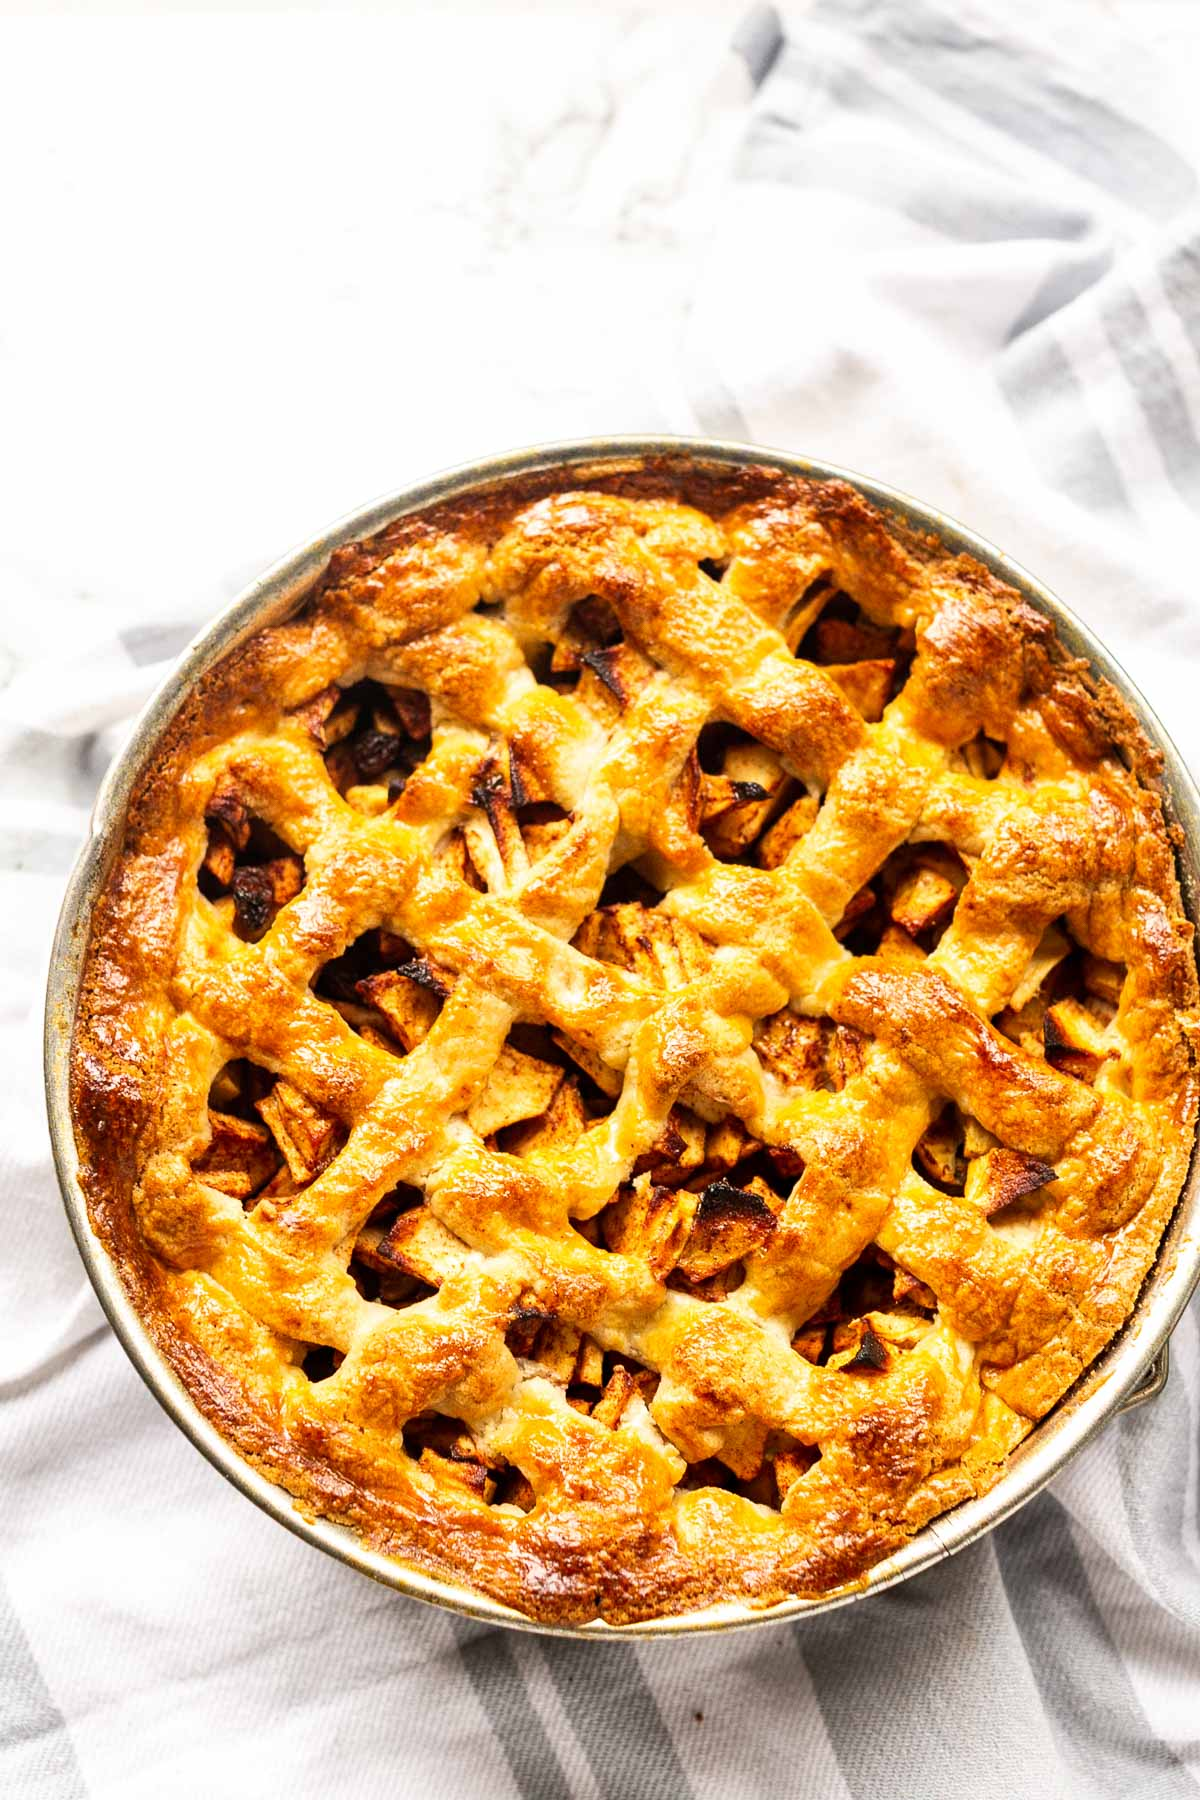 Looking for the best apple pie? Take a look at this Dutch apple pie recipe. Great for dessert or with a cup of tea. Homemade apple pie from scratch. Visit thetortillachannel.com for the full recipe. #fastfoodbistro #applepie #pie #dutchapplepie #dessert